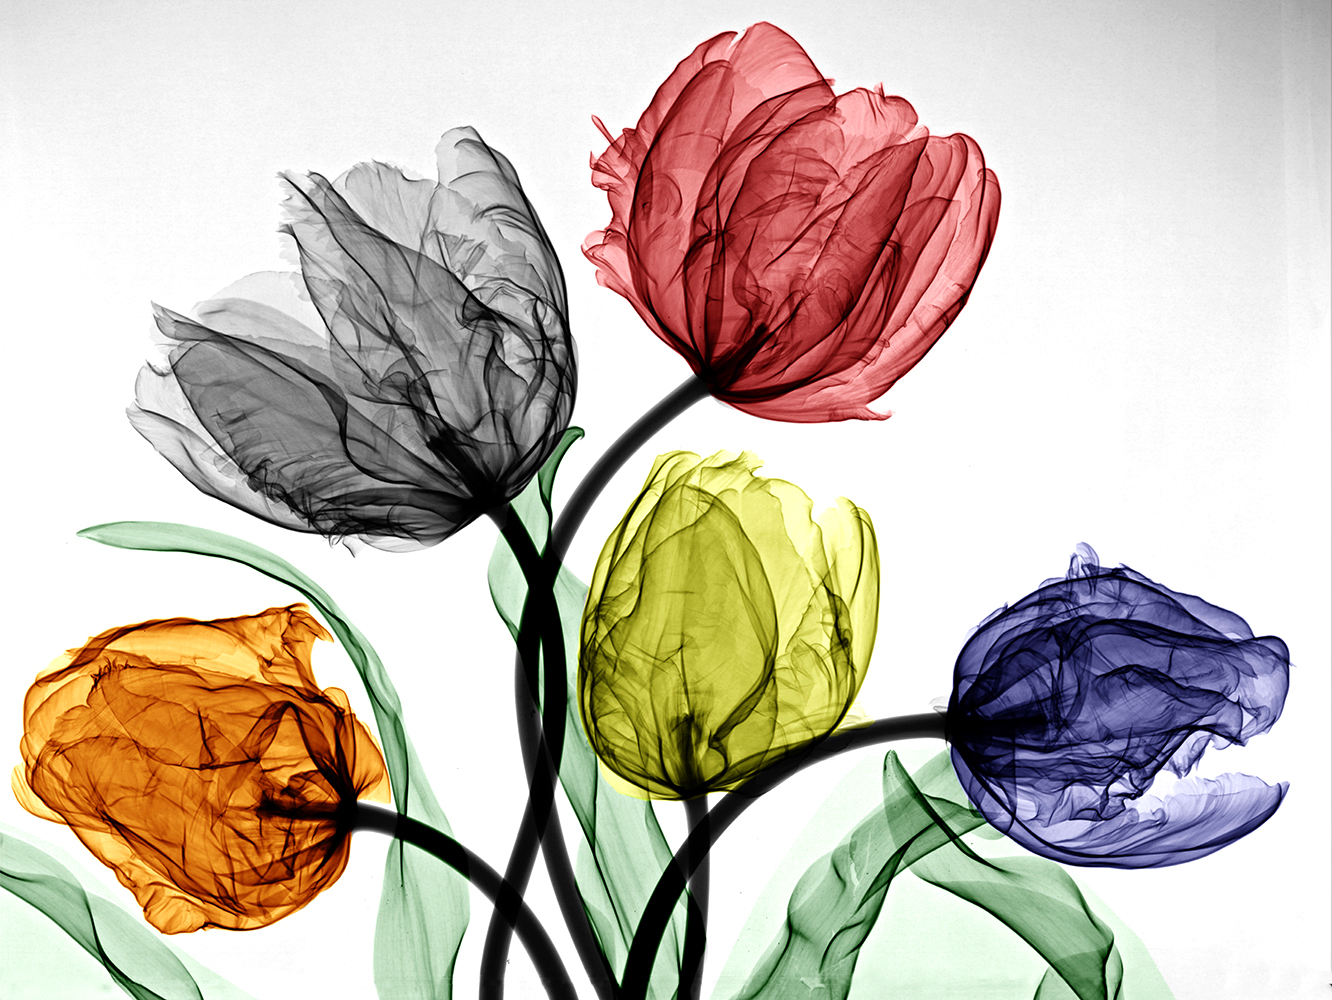 09-Parrot-Tulips-Arie-van-t-Riet-Colored-X-ray-Photographs-of-Nature-www-designstack-co